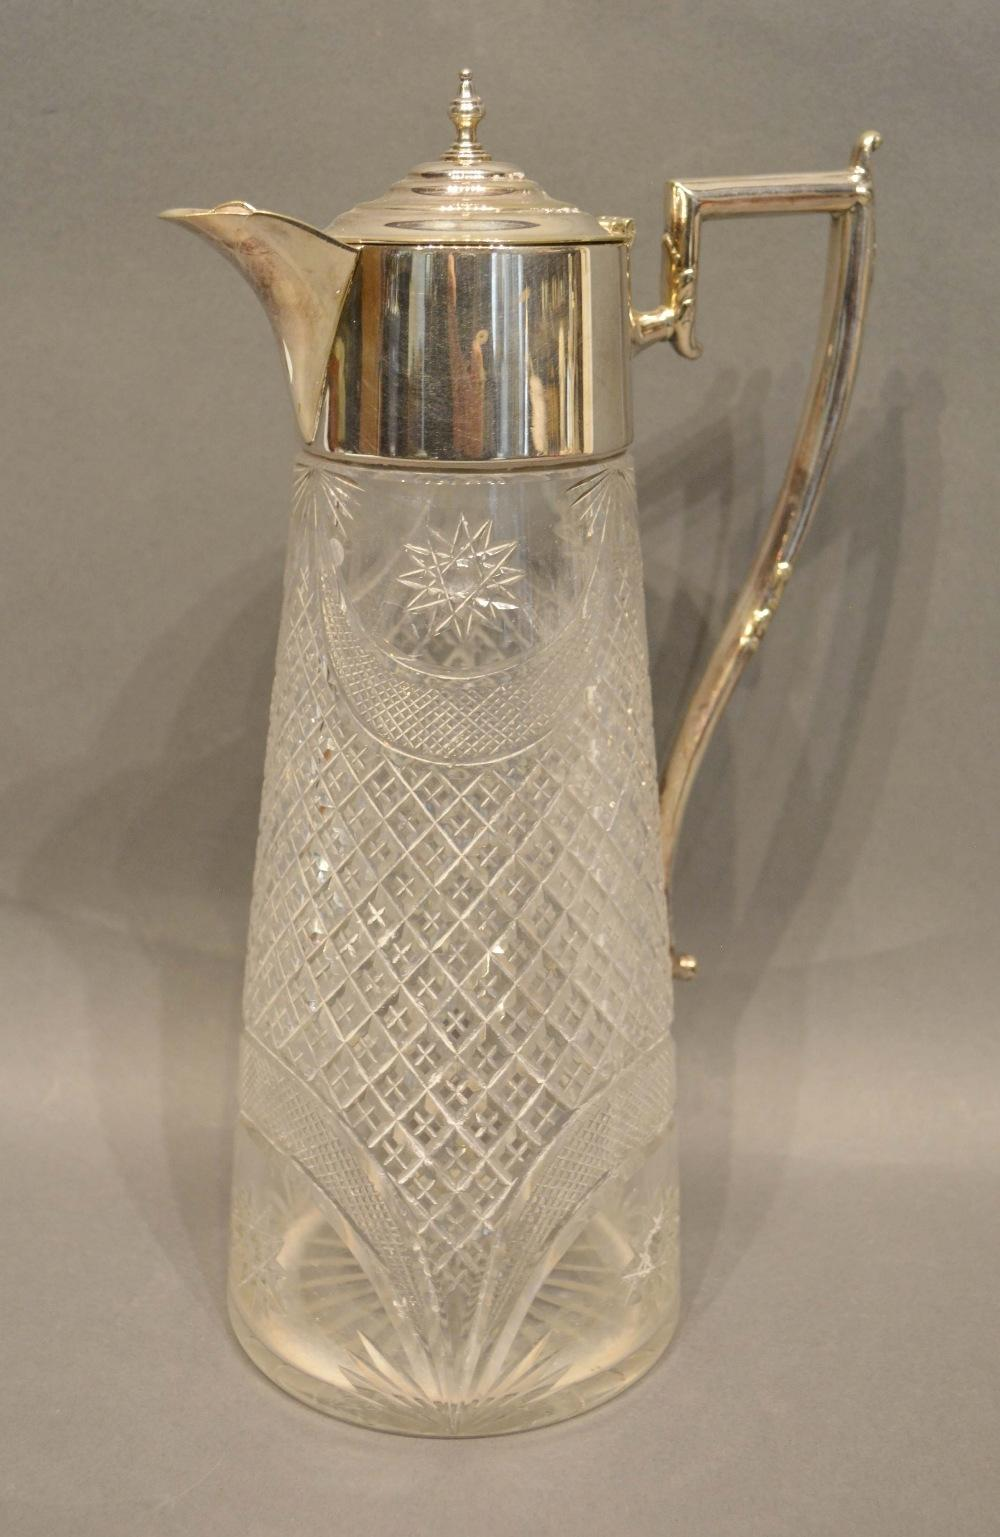 Lot 208 - An Edwardian Silver Plated and Cut Glass Claret Jug with shaped handle, 28cm tall